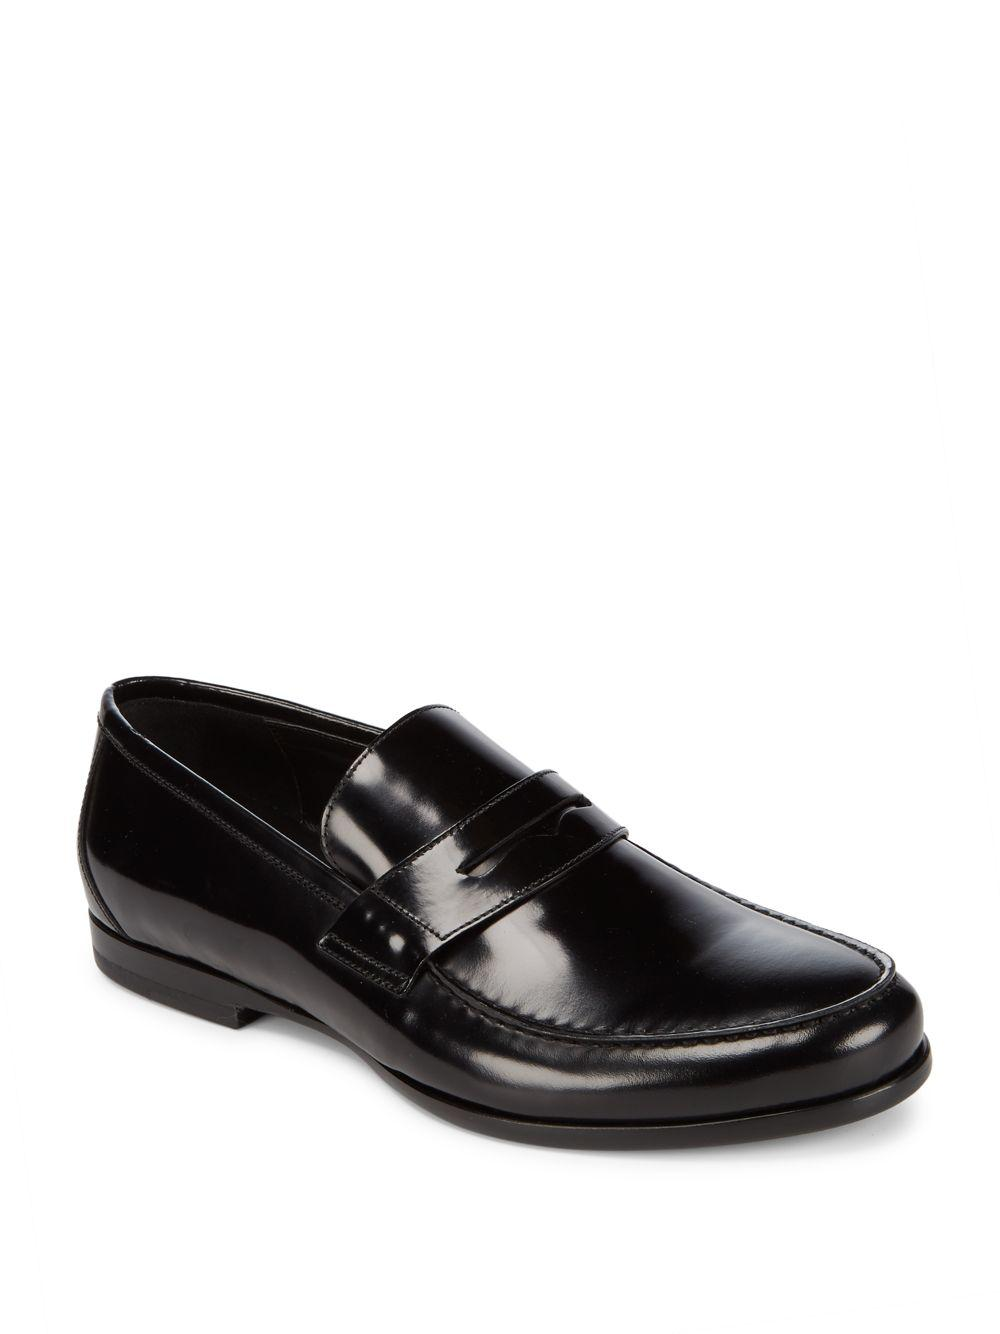 Mens Downing Bit-Embellished Leather Loafers Harrys of London LmwI6Sa6F9